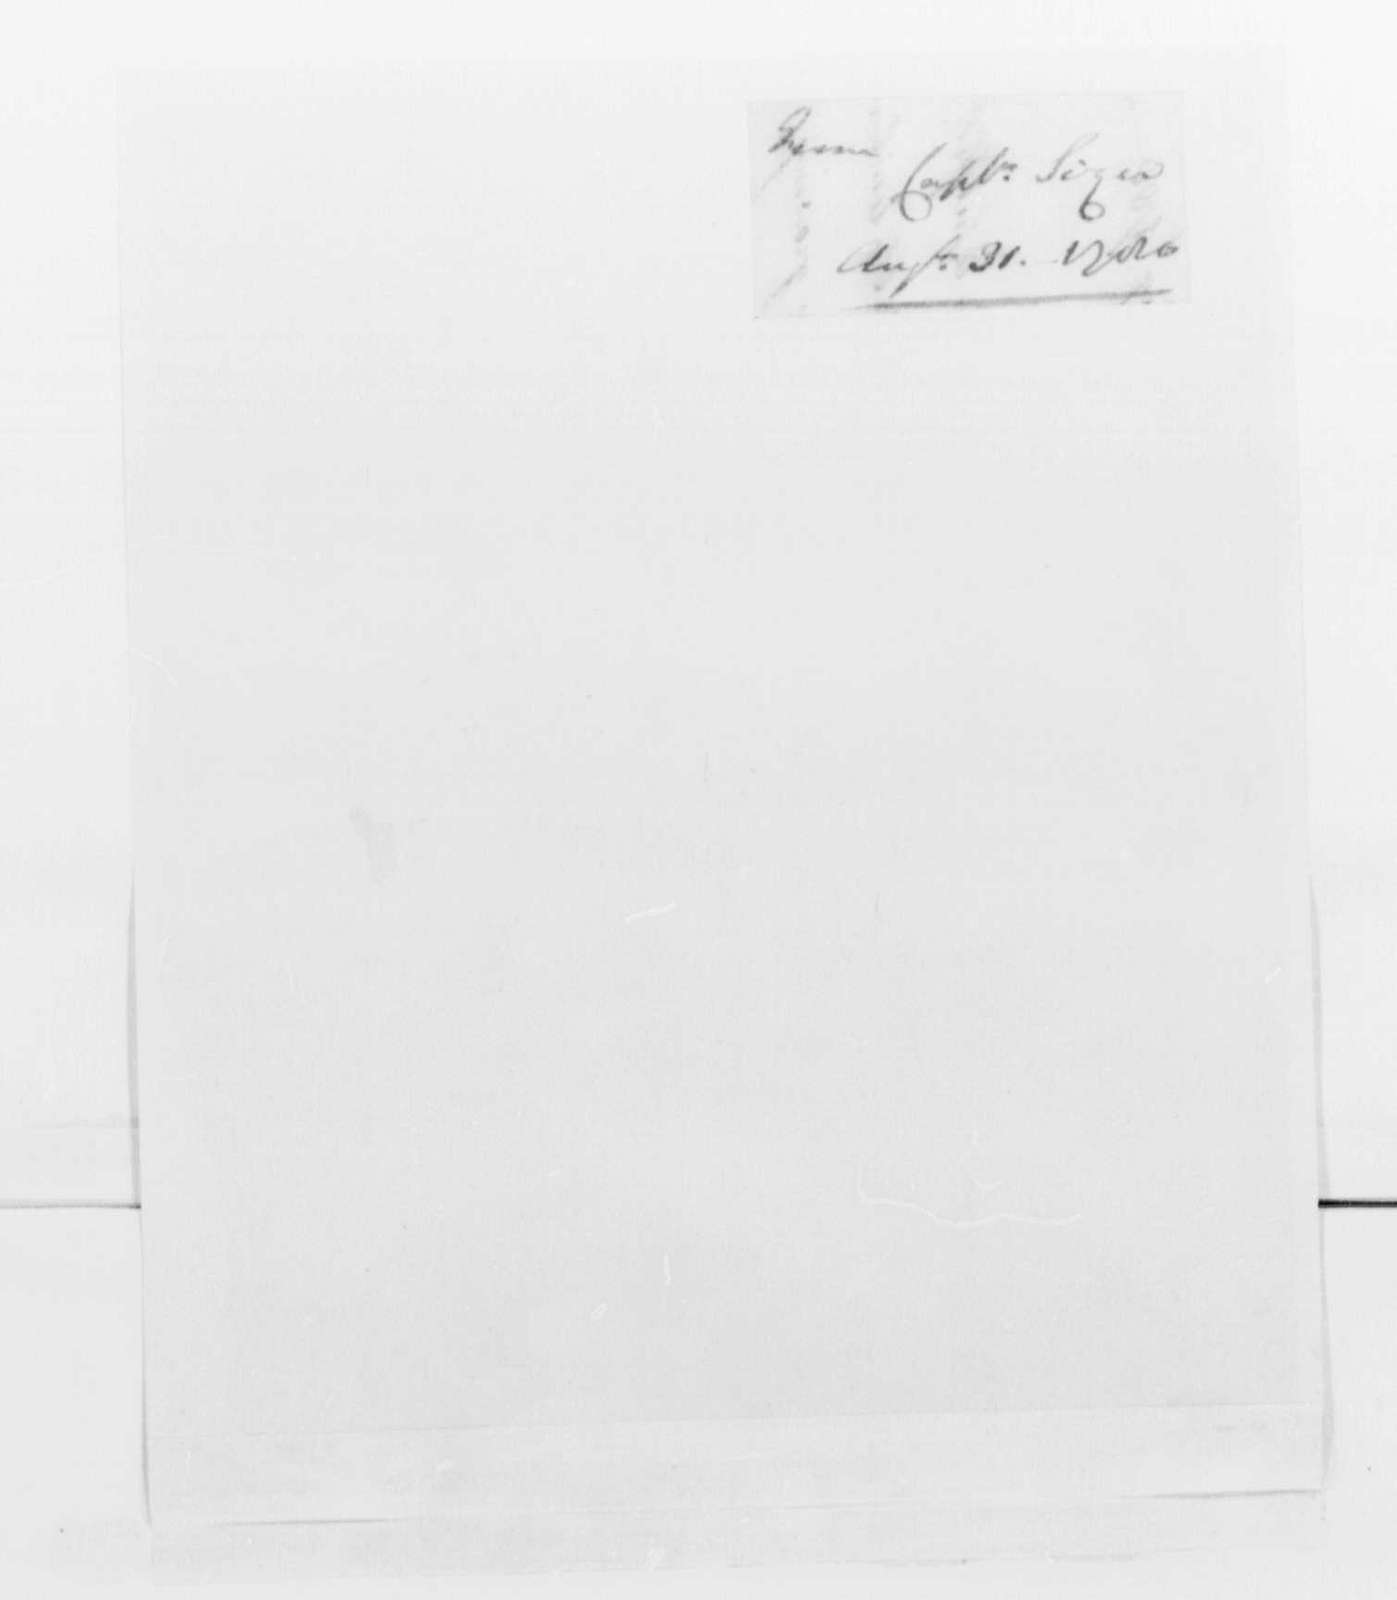 George Washington Papers, Series 4, General Correspondence: William Sizer to Benedict Arnold, August 31, 1780